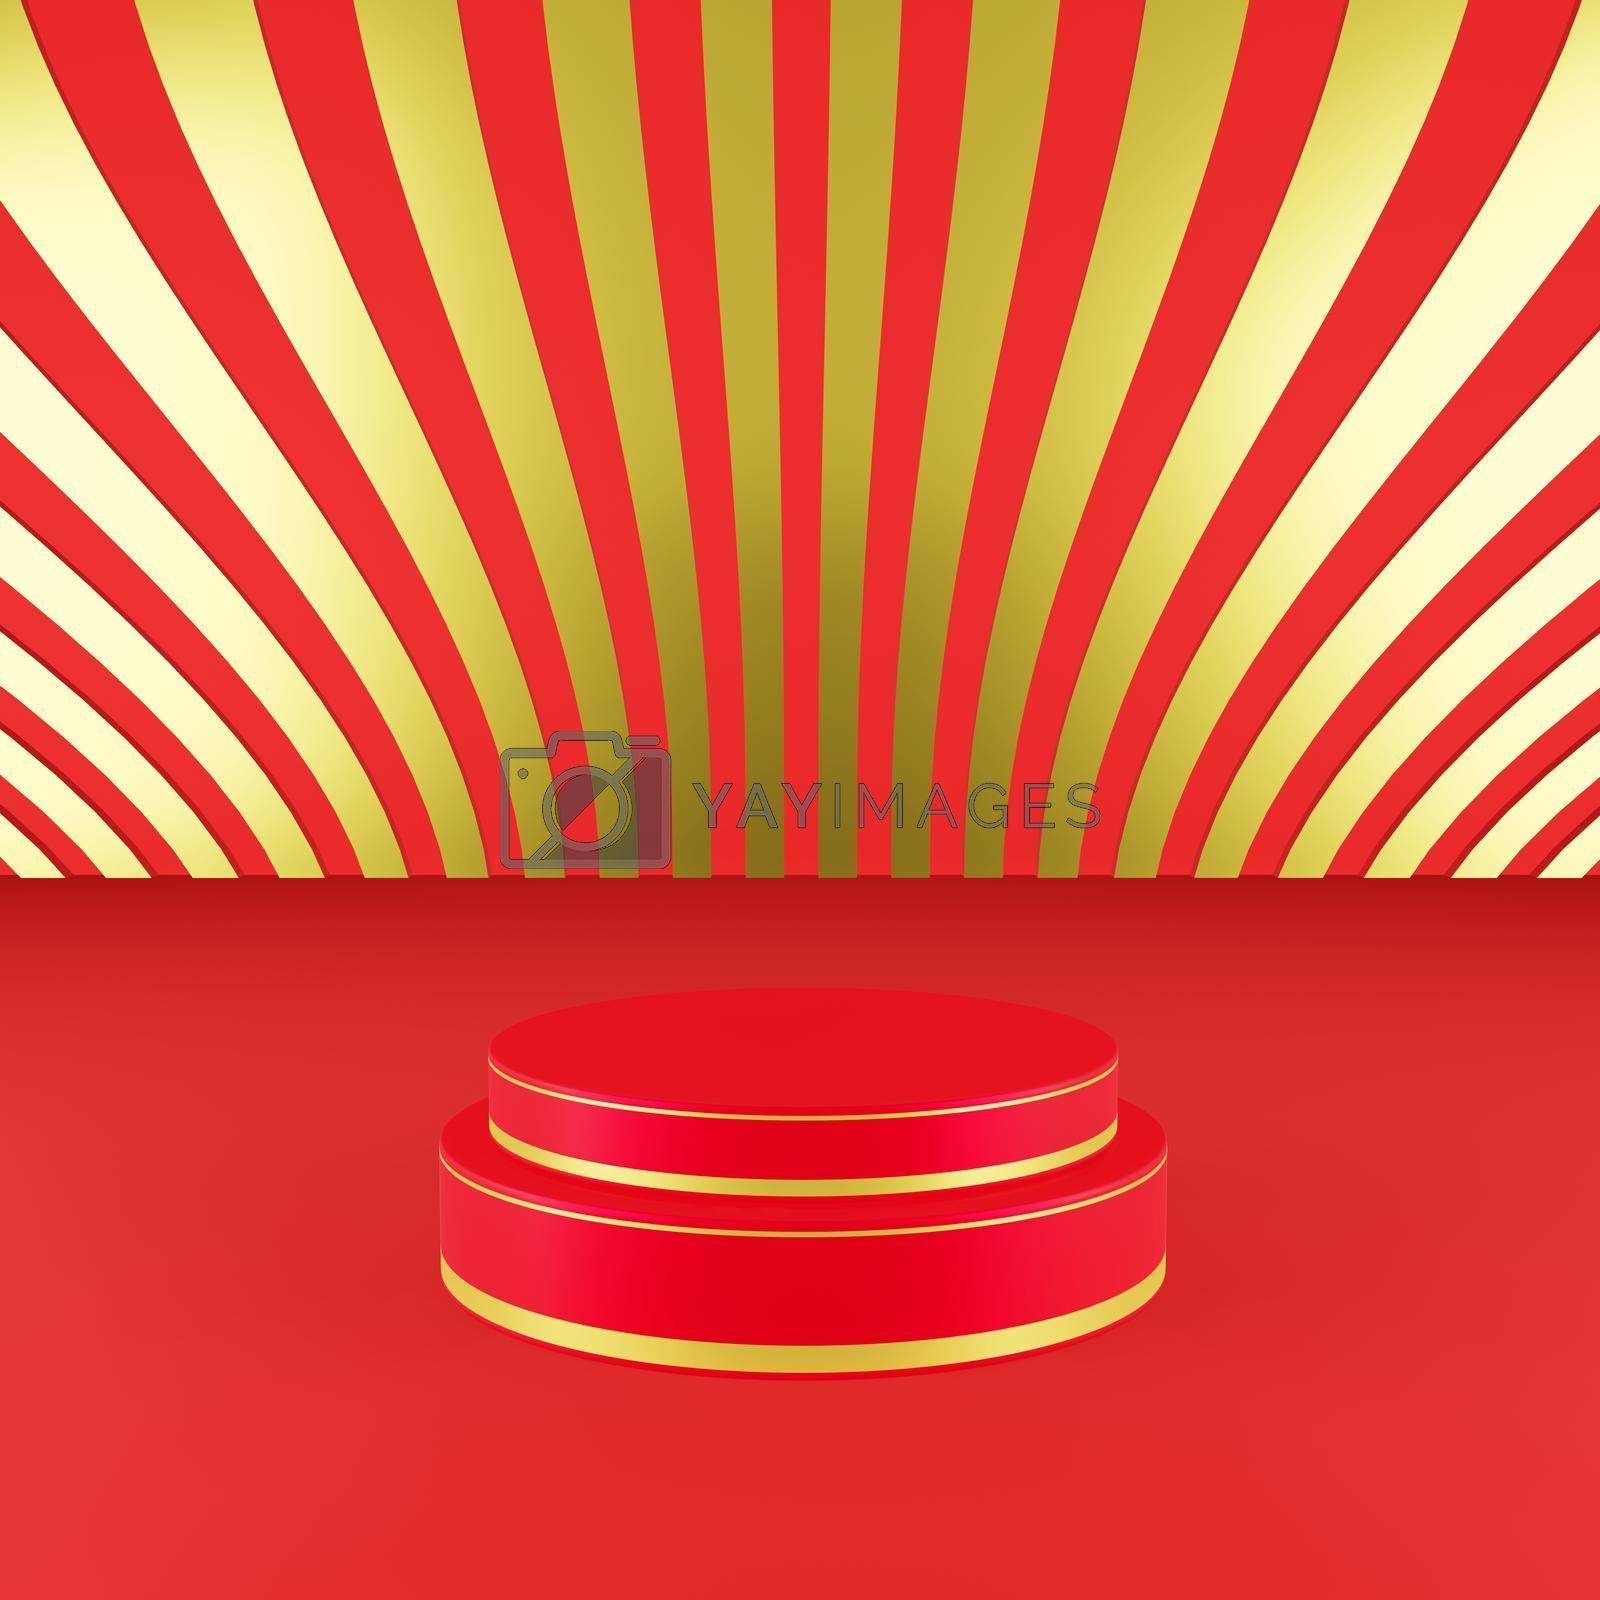 Royalty free image of Red podium with golden girdle Chinese new year season concept by eaglesky